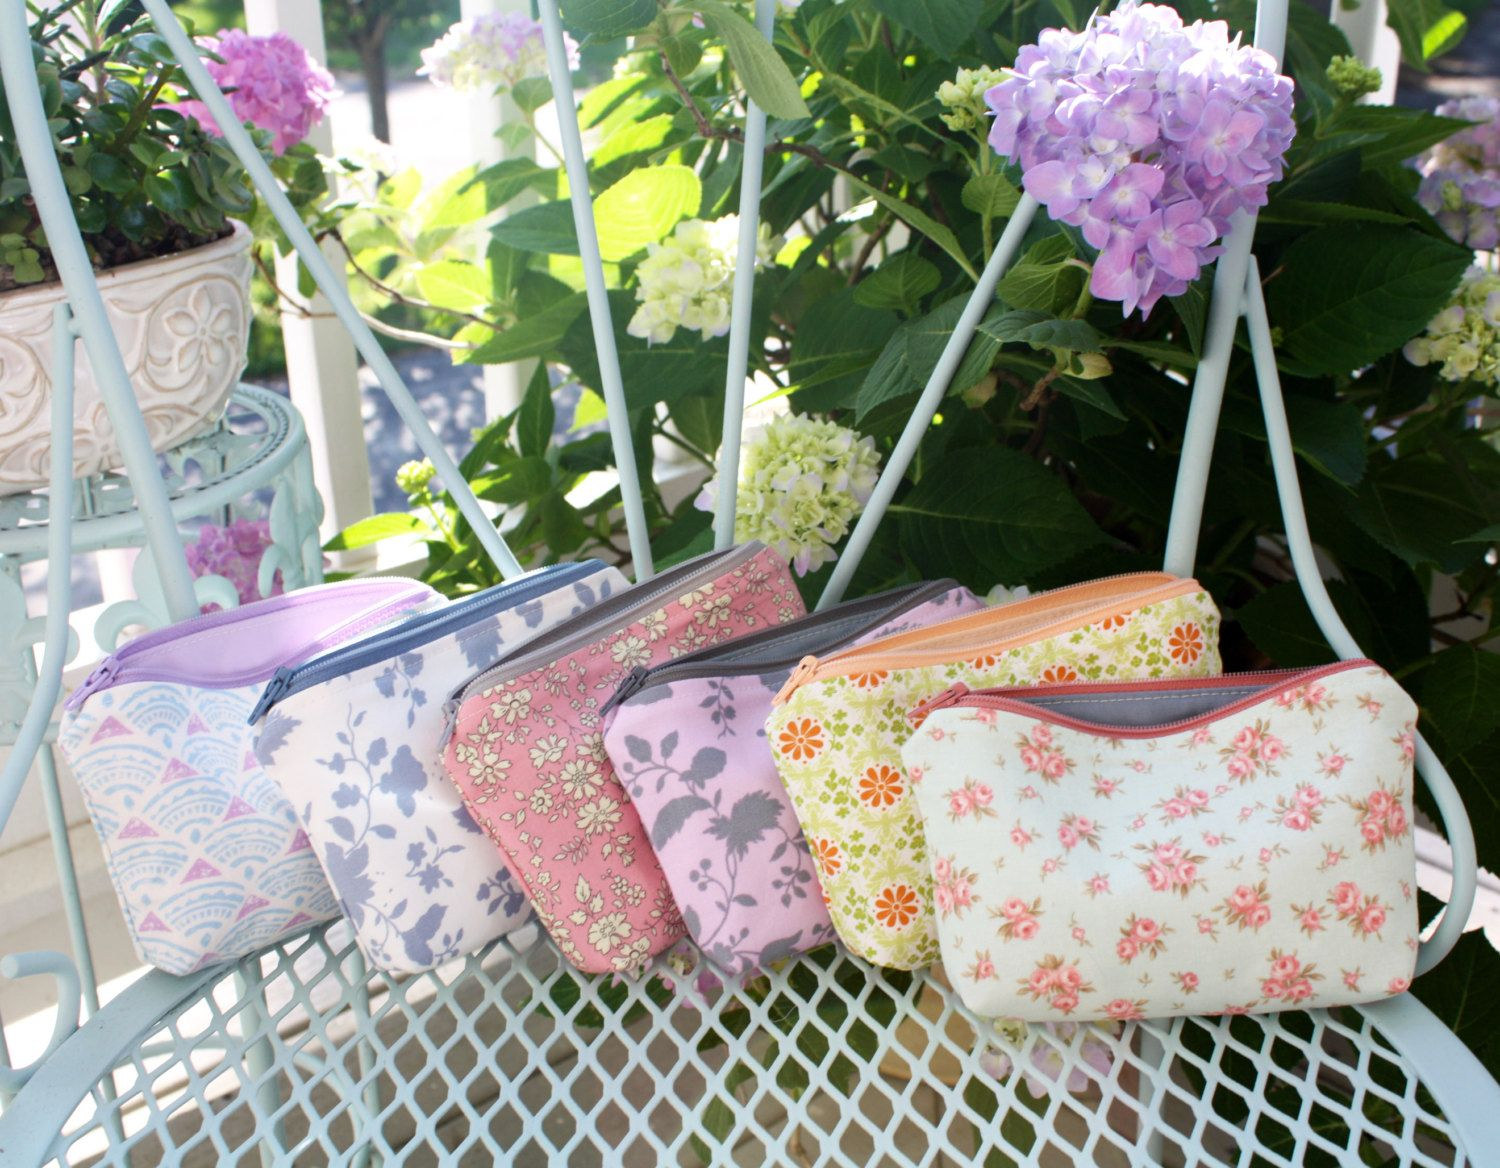 Custom Small Purse - Maid of Honor or Bridesmaid Gift by LoveofPattern on Etsy